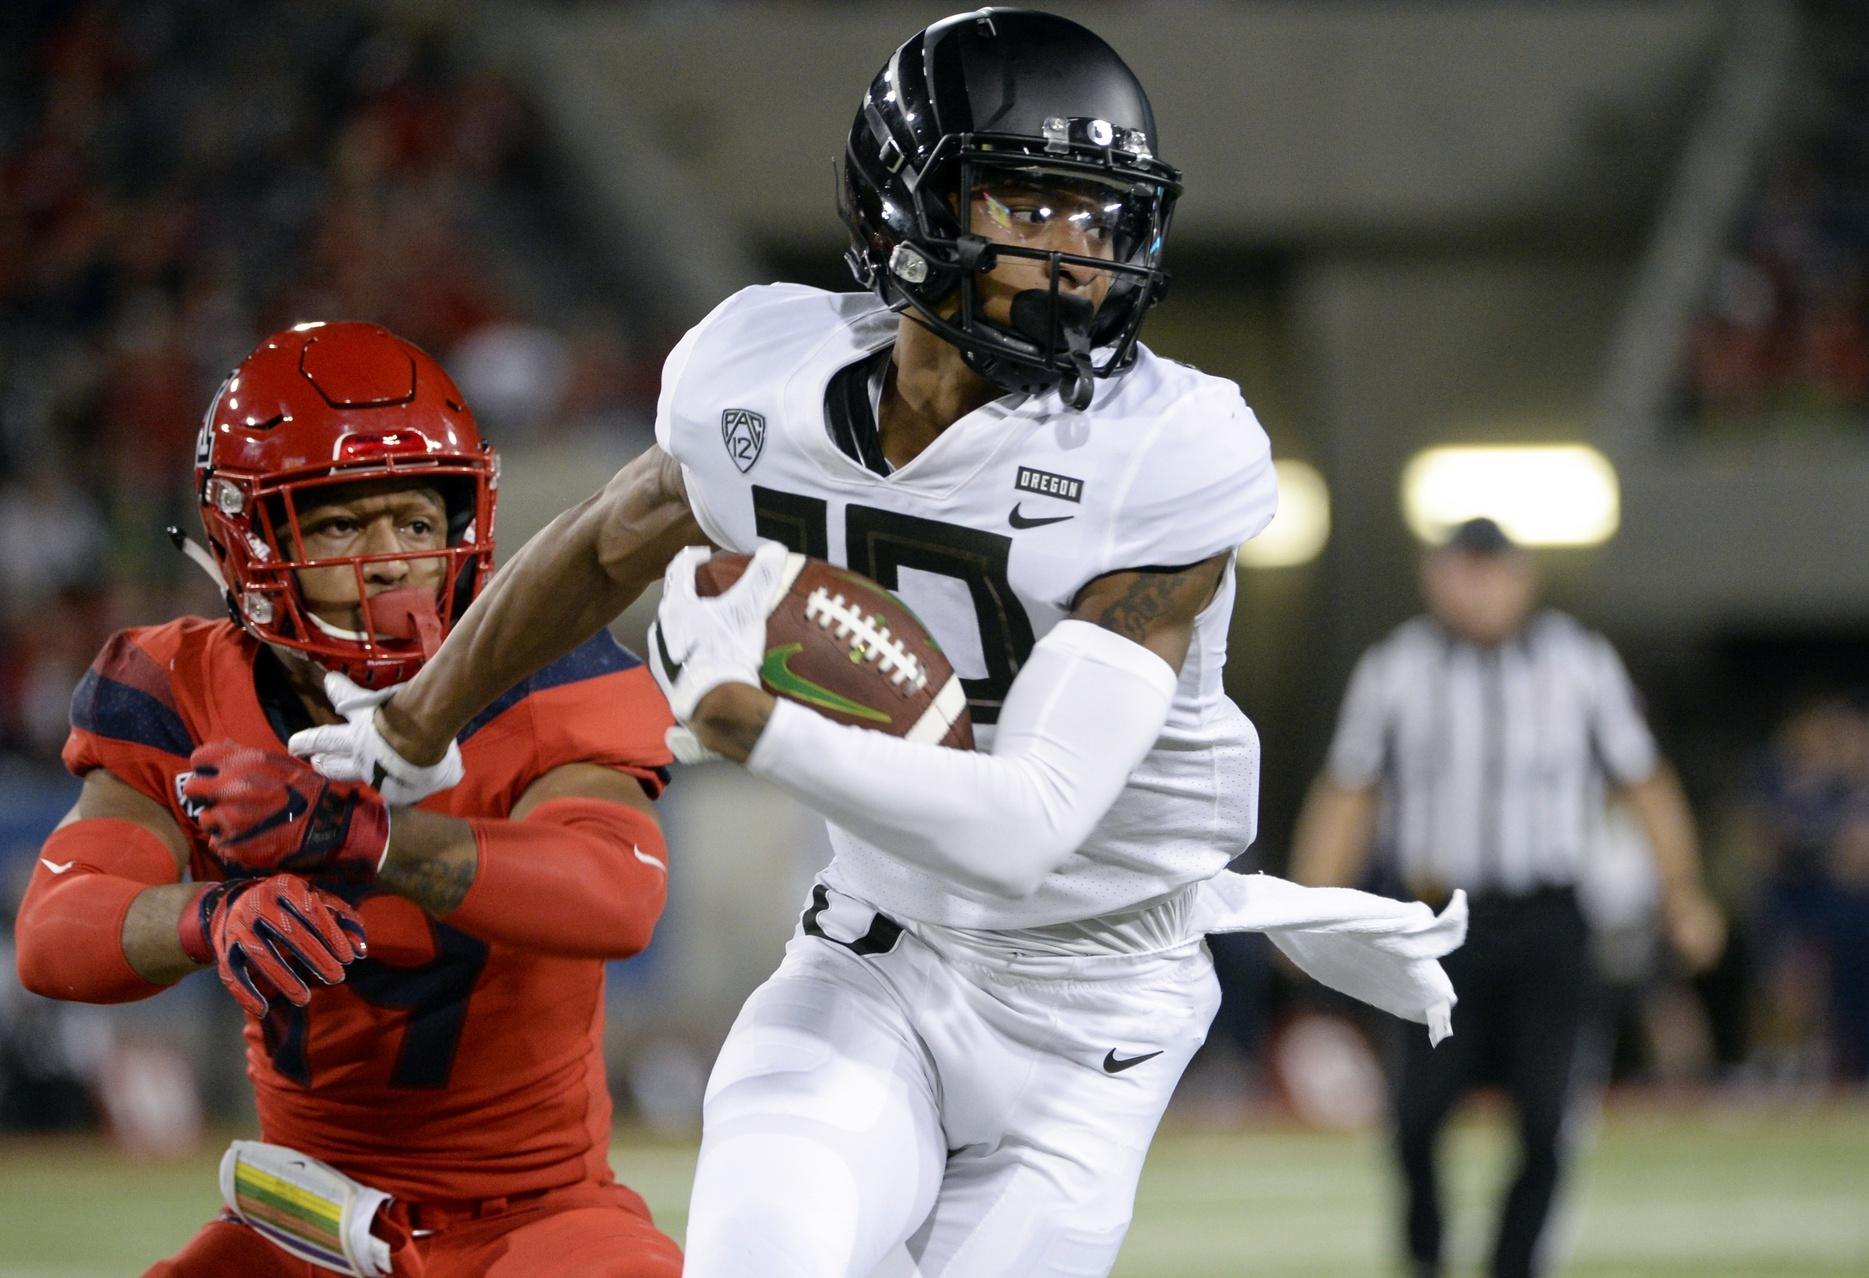 Dillion Mitchell is meeting with NFL teams and ready to make the world eat their words